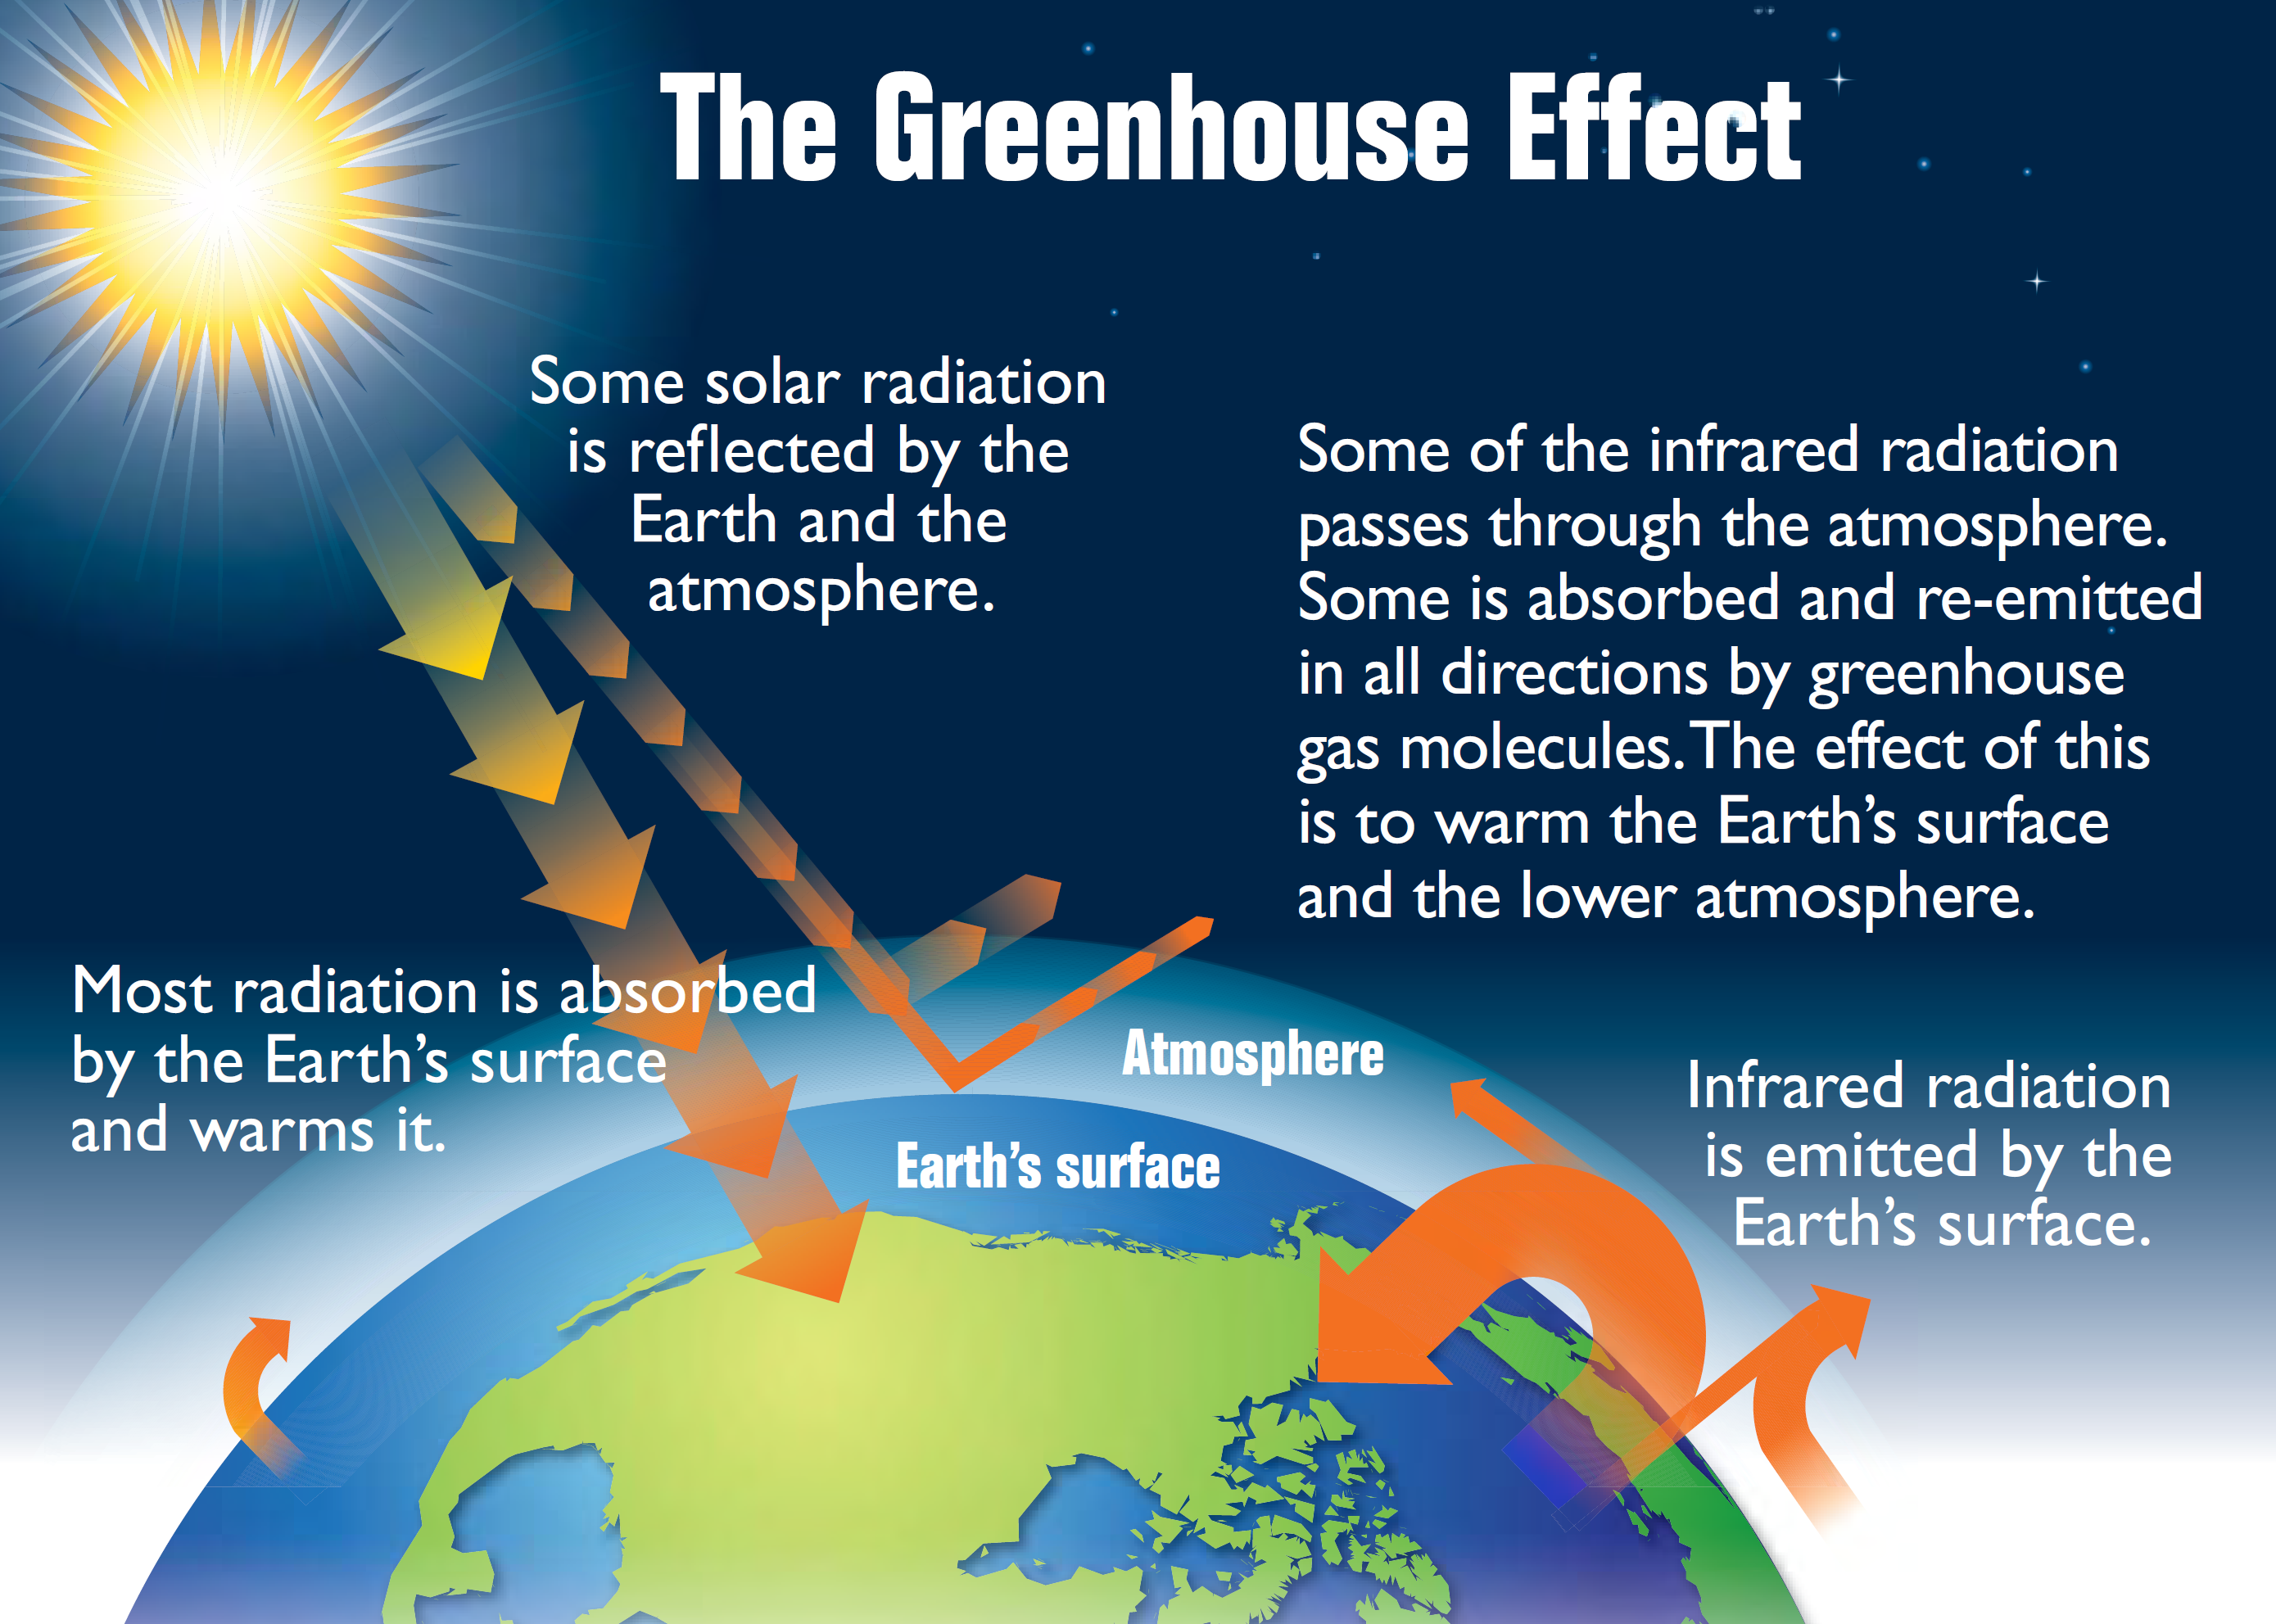 The greenhouse effect from https://www.schoology.com/template/239604660.